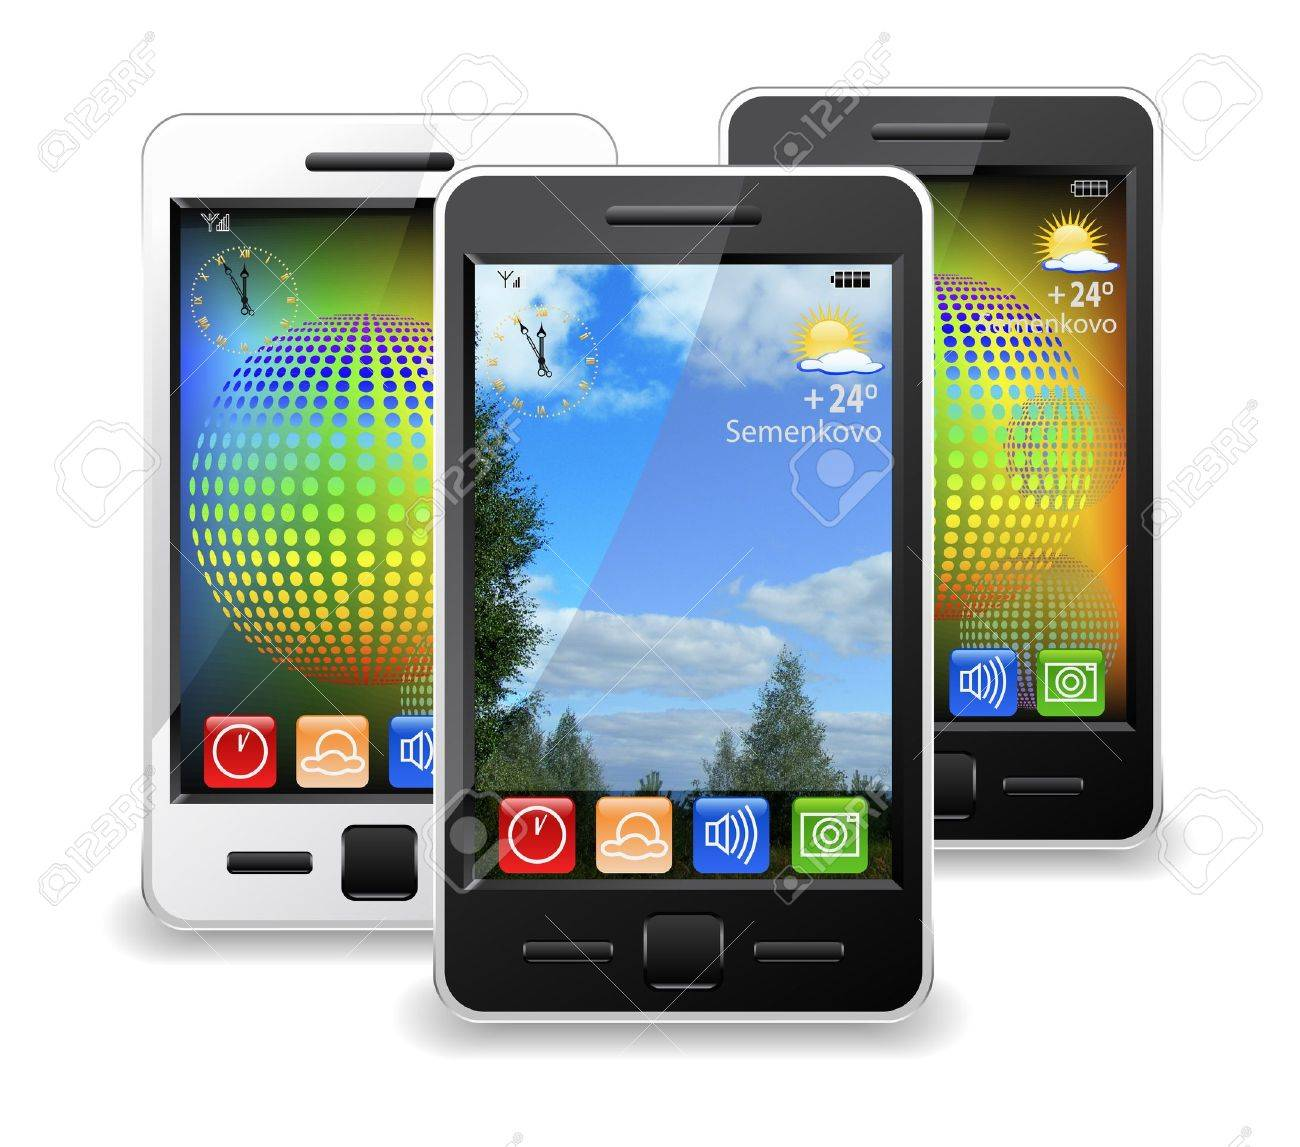 Modern mobile phones are shown in the image. - 11056941